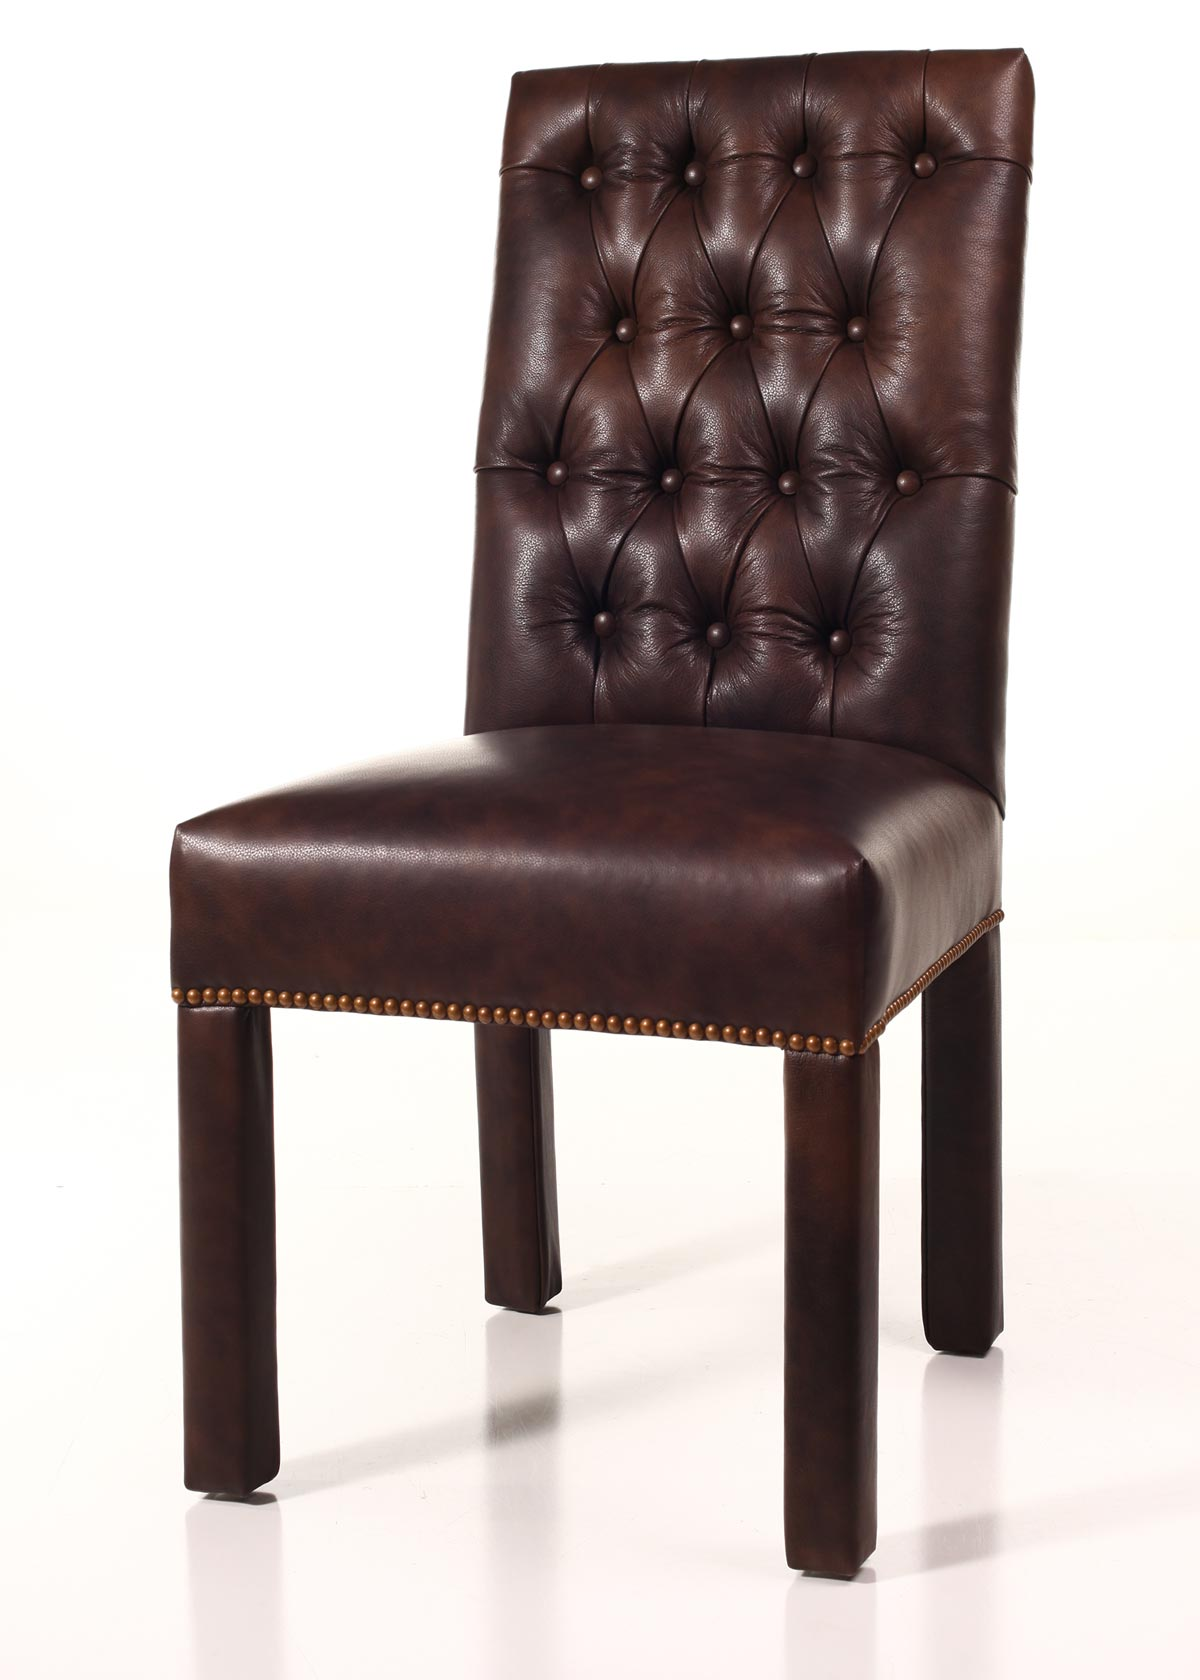 parson chairs cosco high chair model 03354 leather tufted back parsons